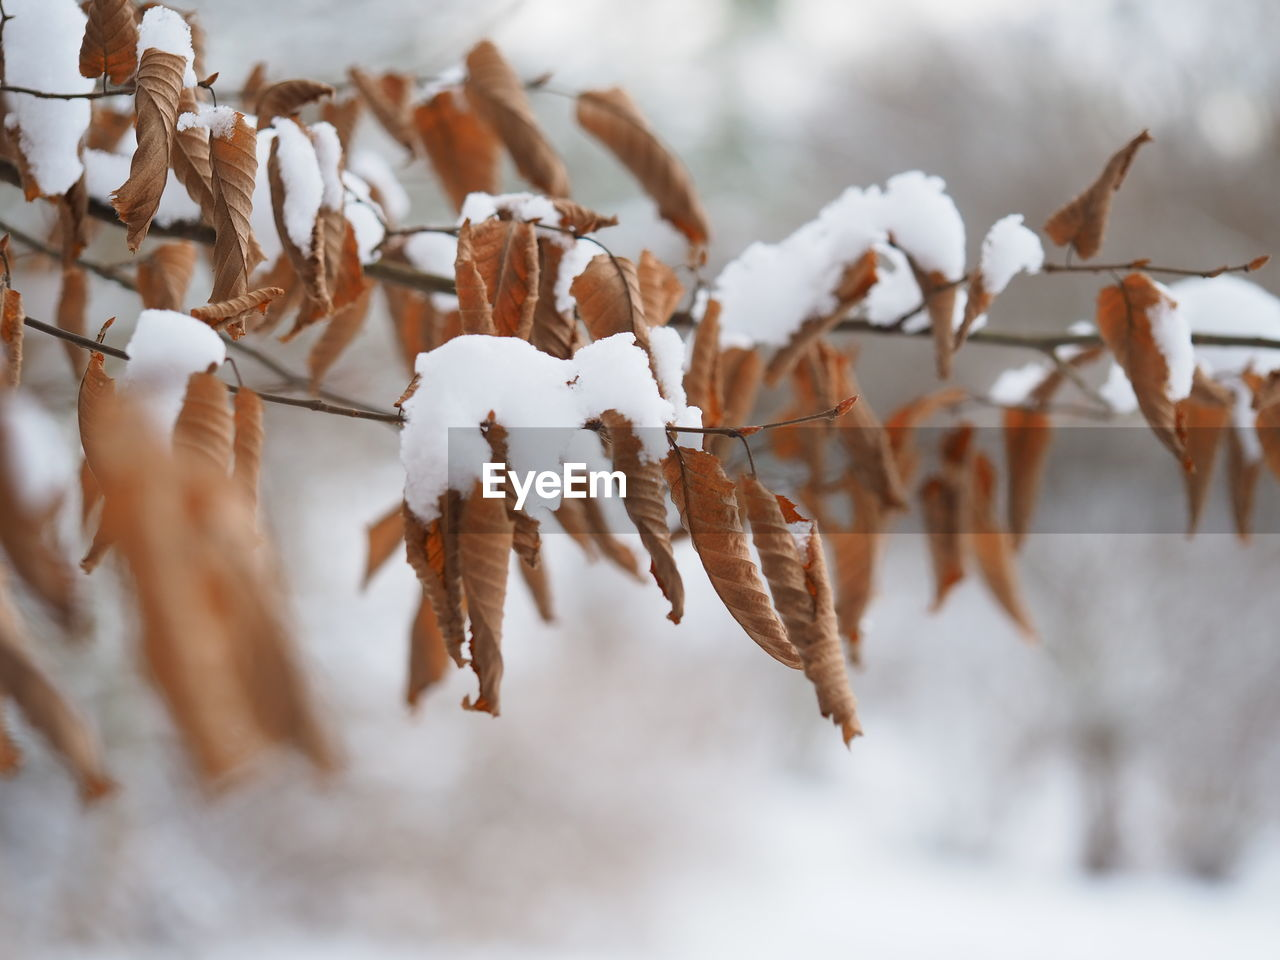 CLOSE-UP OF SNOW ON DRY LEAVES